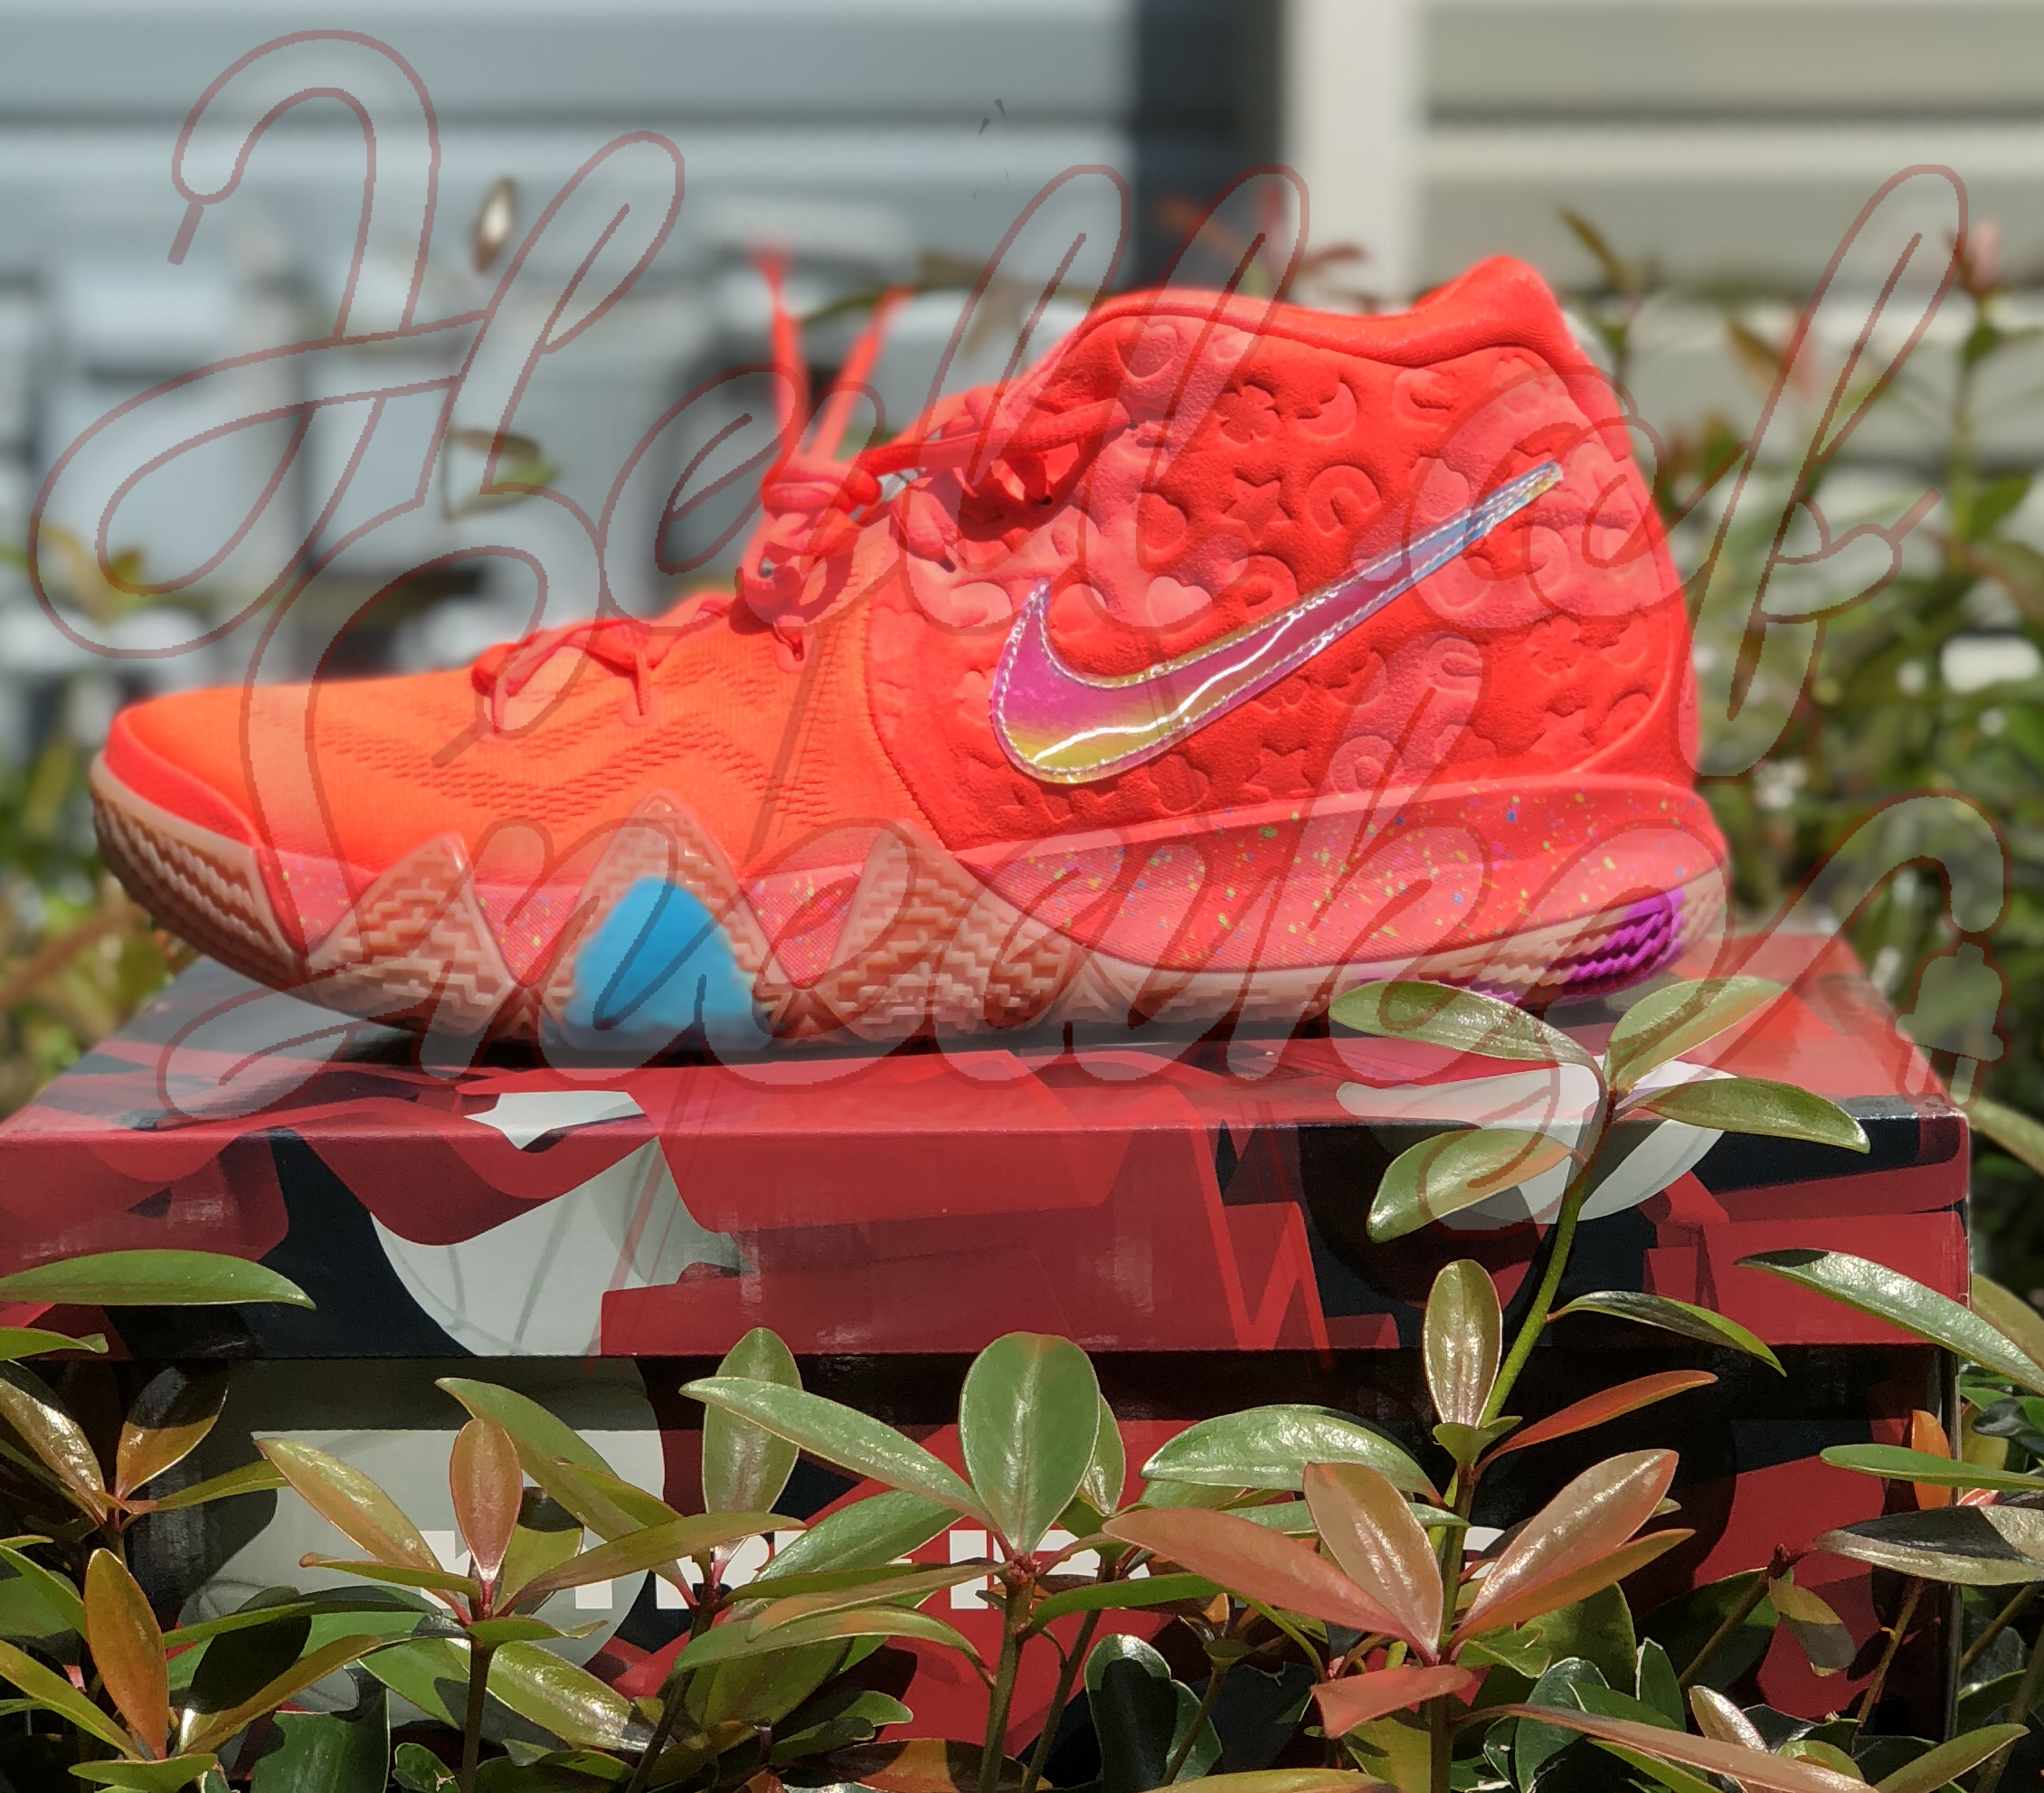 7afb5f4612d Kyrie 4 Cereal Pack  Lucky Charms